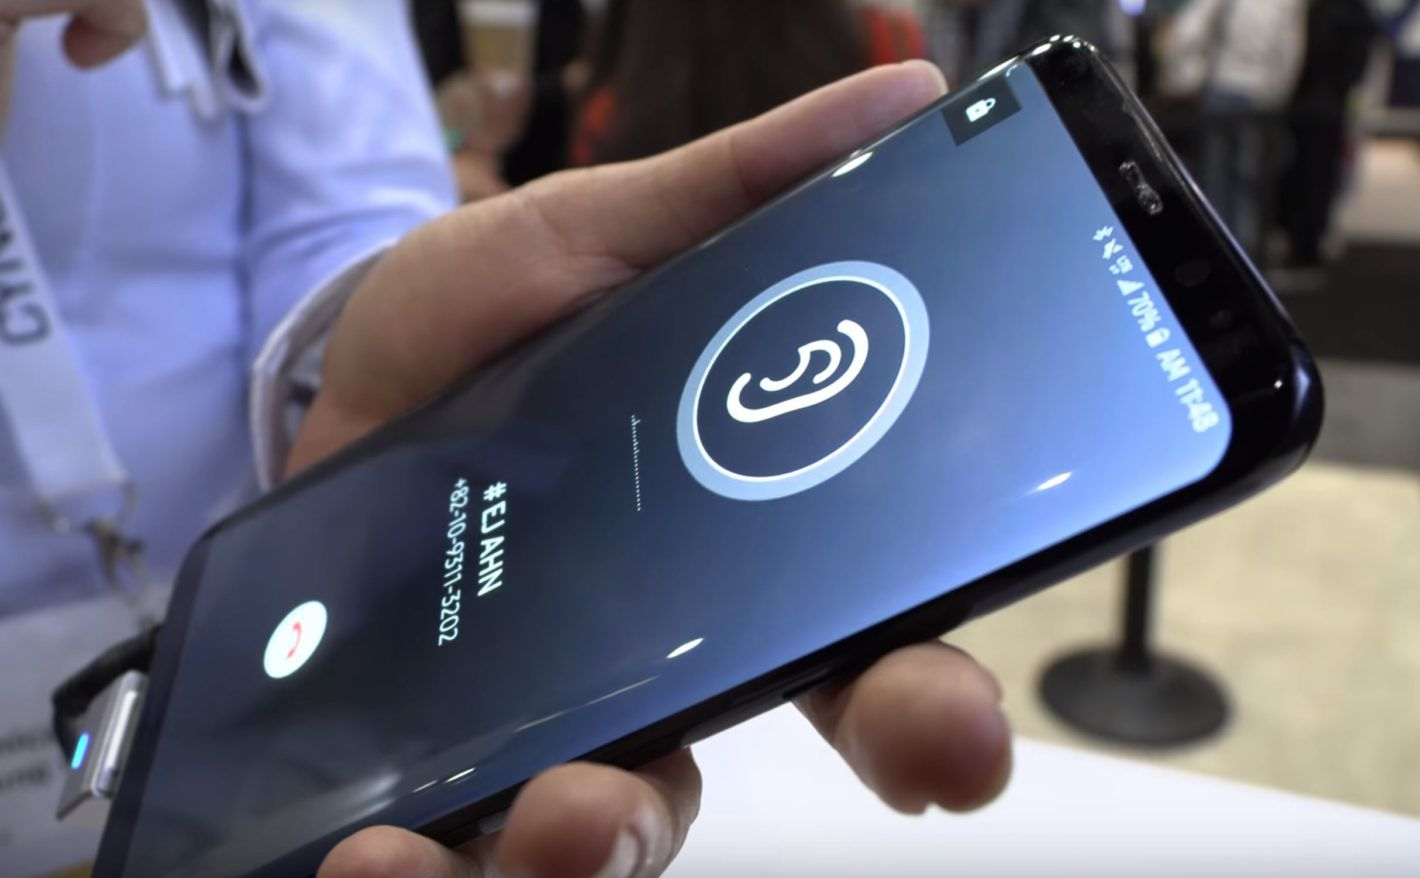 Video See SpeakerLess Audio Tech That Galaxy S10 May